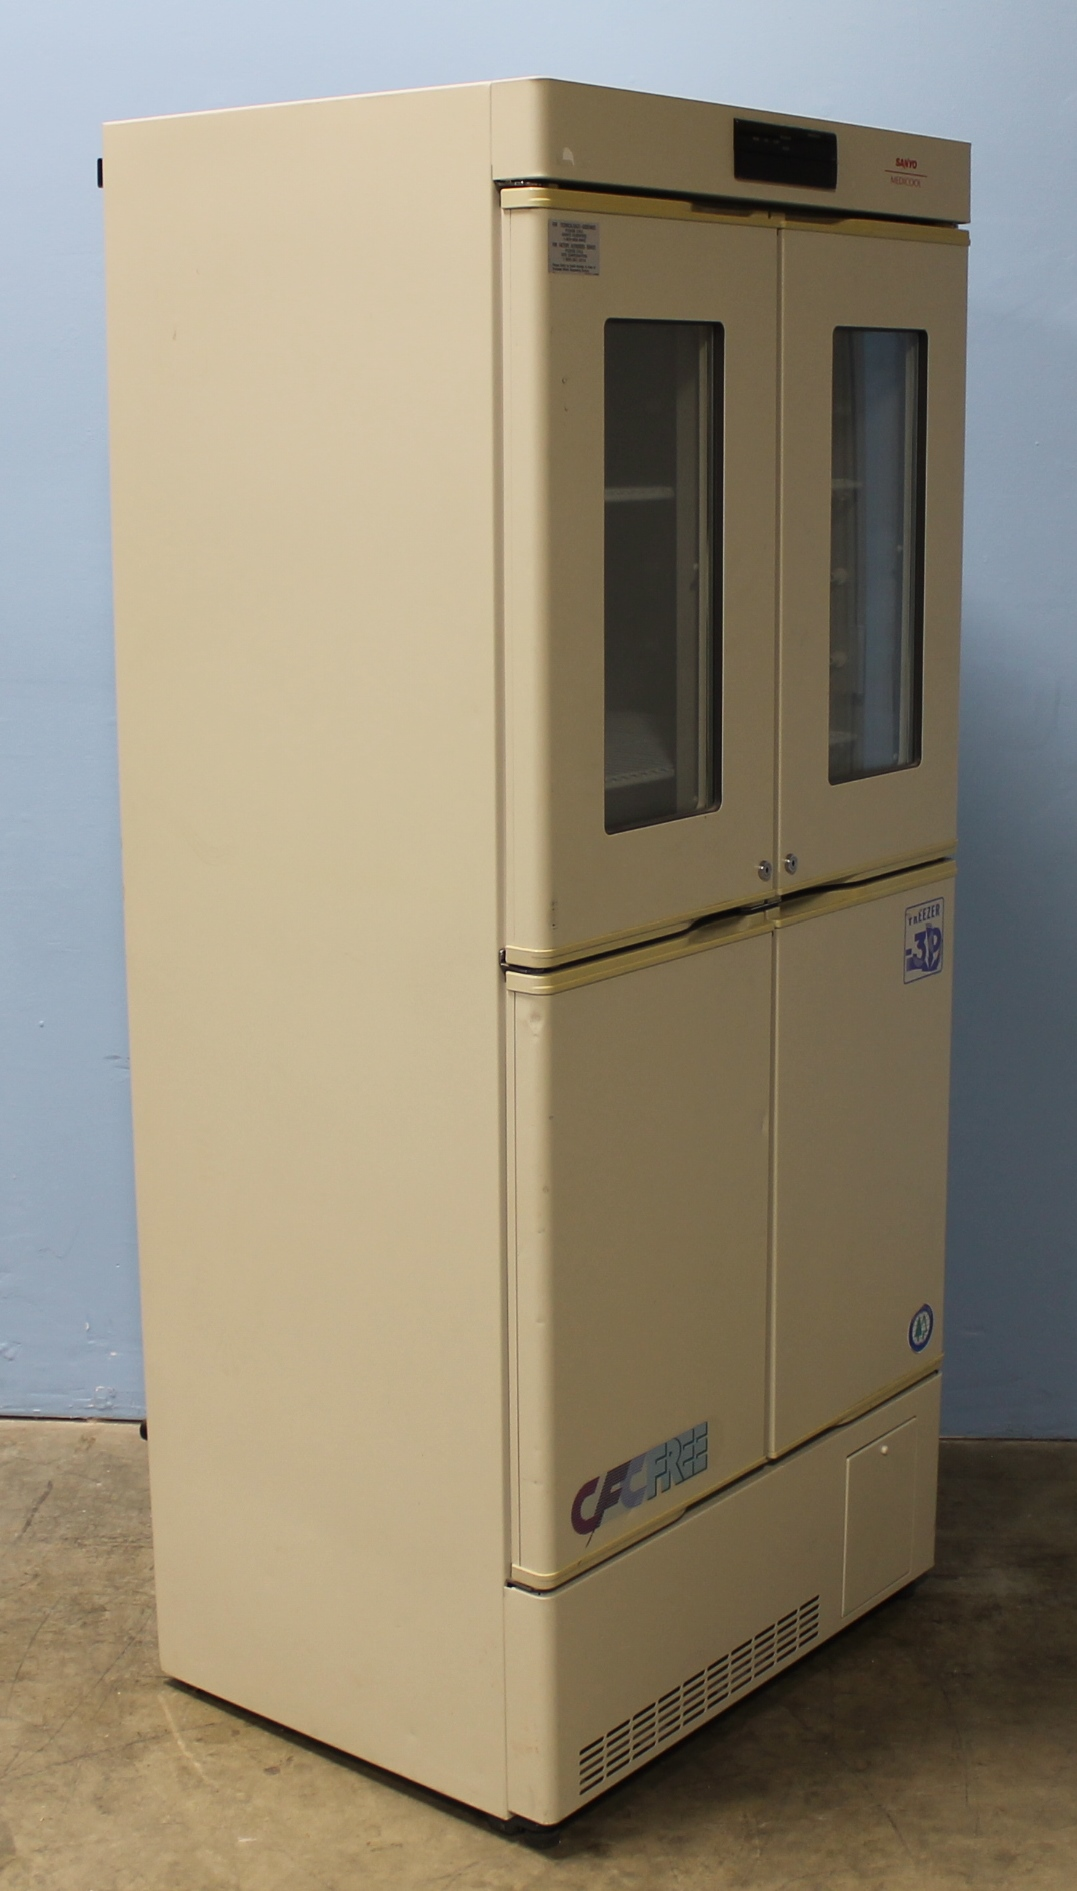 Mpr F Pharmaceutical Refrigerator With Freezer on Kenmore Refrigerator Model